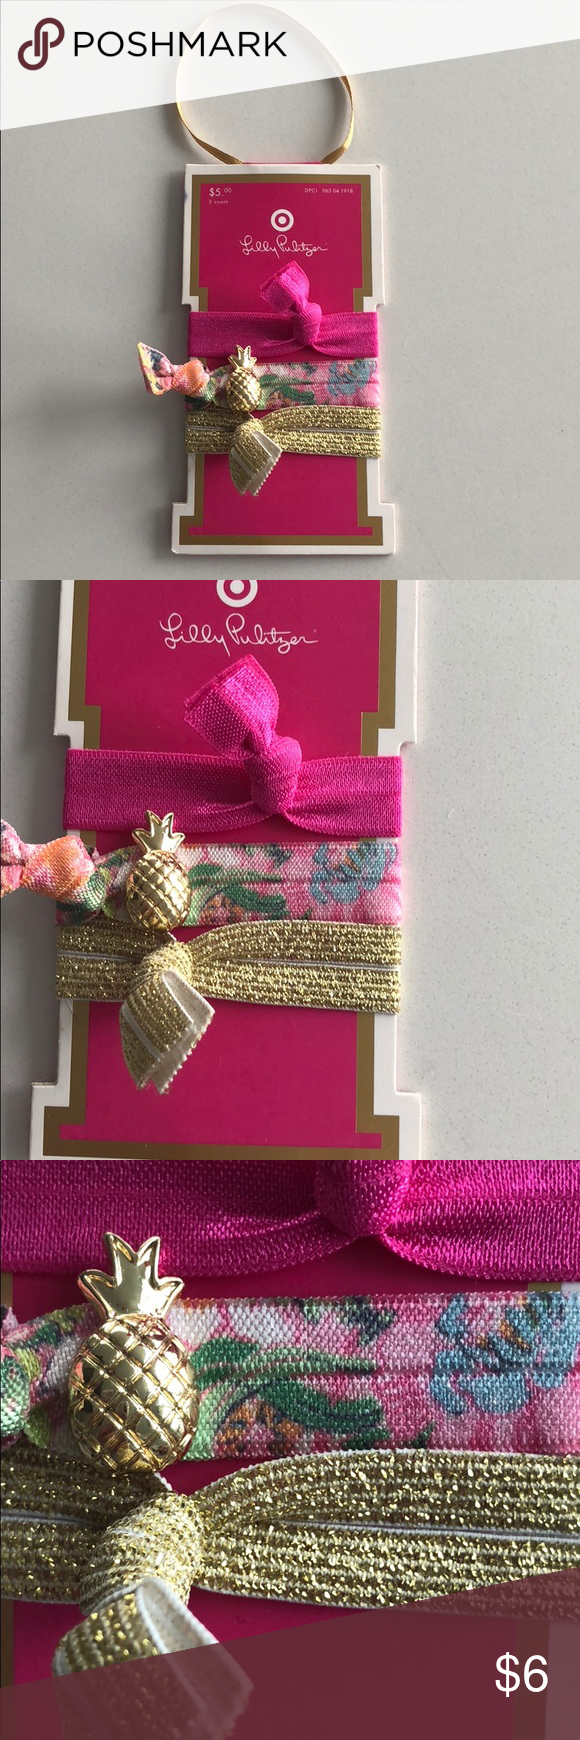 NWT Lilly Pulitzer Hair Ties 🍍🍍 NWT Lilly Pulitzer Hair Ties 🍍🍍from  Lilly x Target collection. Pink pineapple and gold. Super cute! ed0c8d718fc